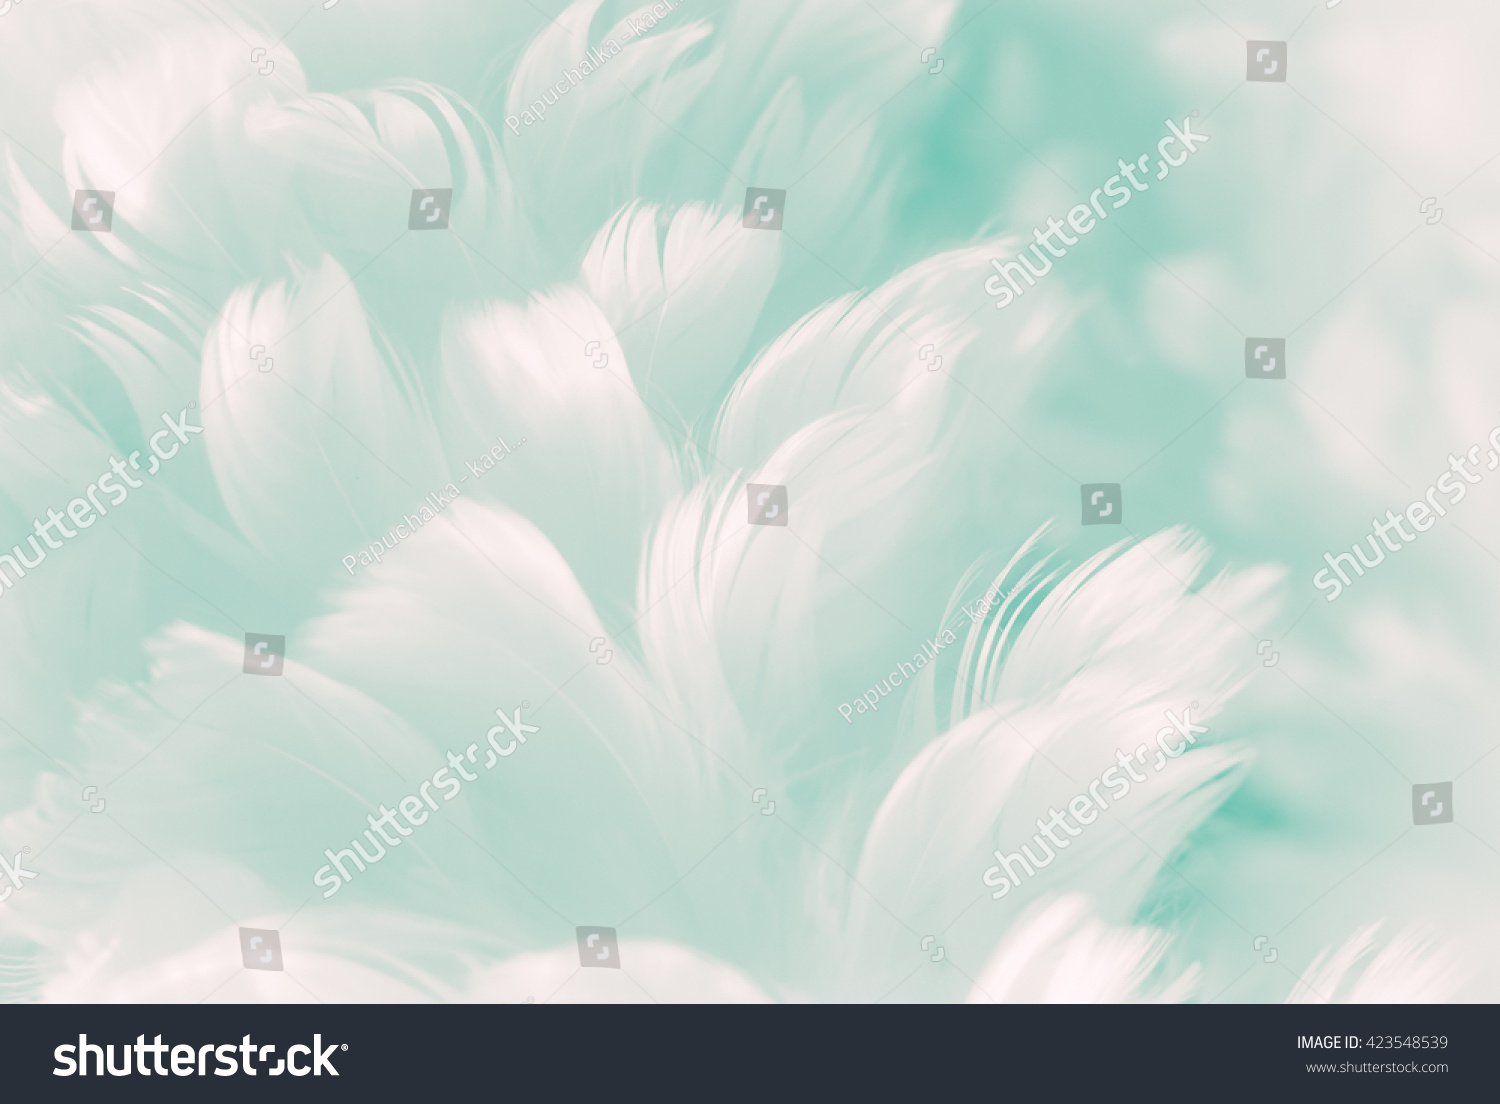 White fluffy feather closeup - pale Tiffany blue to robin egg greenish color background - and new coming Jade Evanescence color of Fashion Color Trends - Spring Summer 2017 #423548539